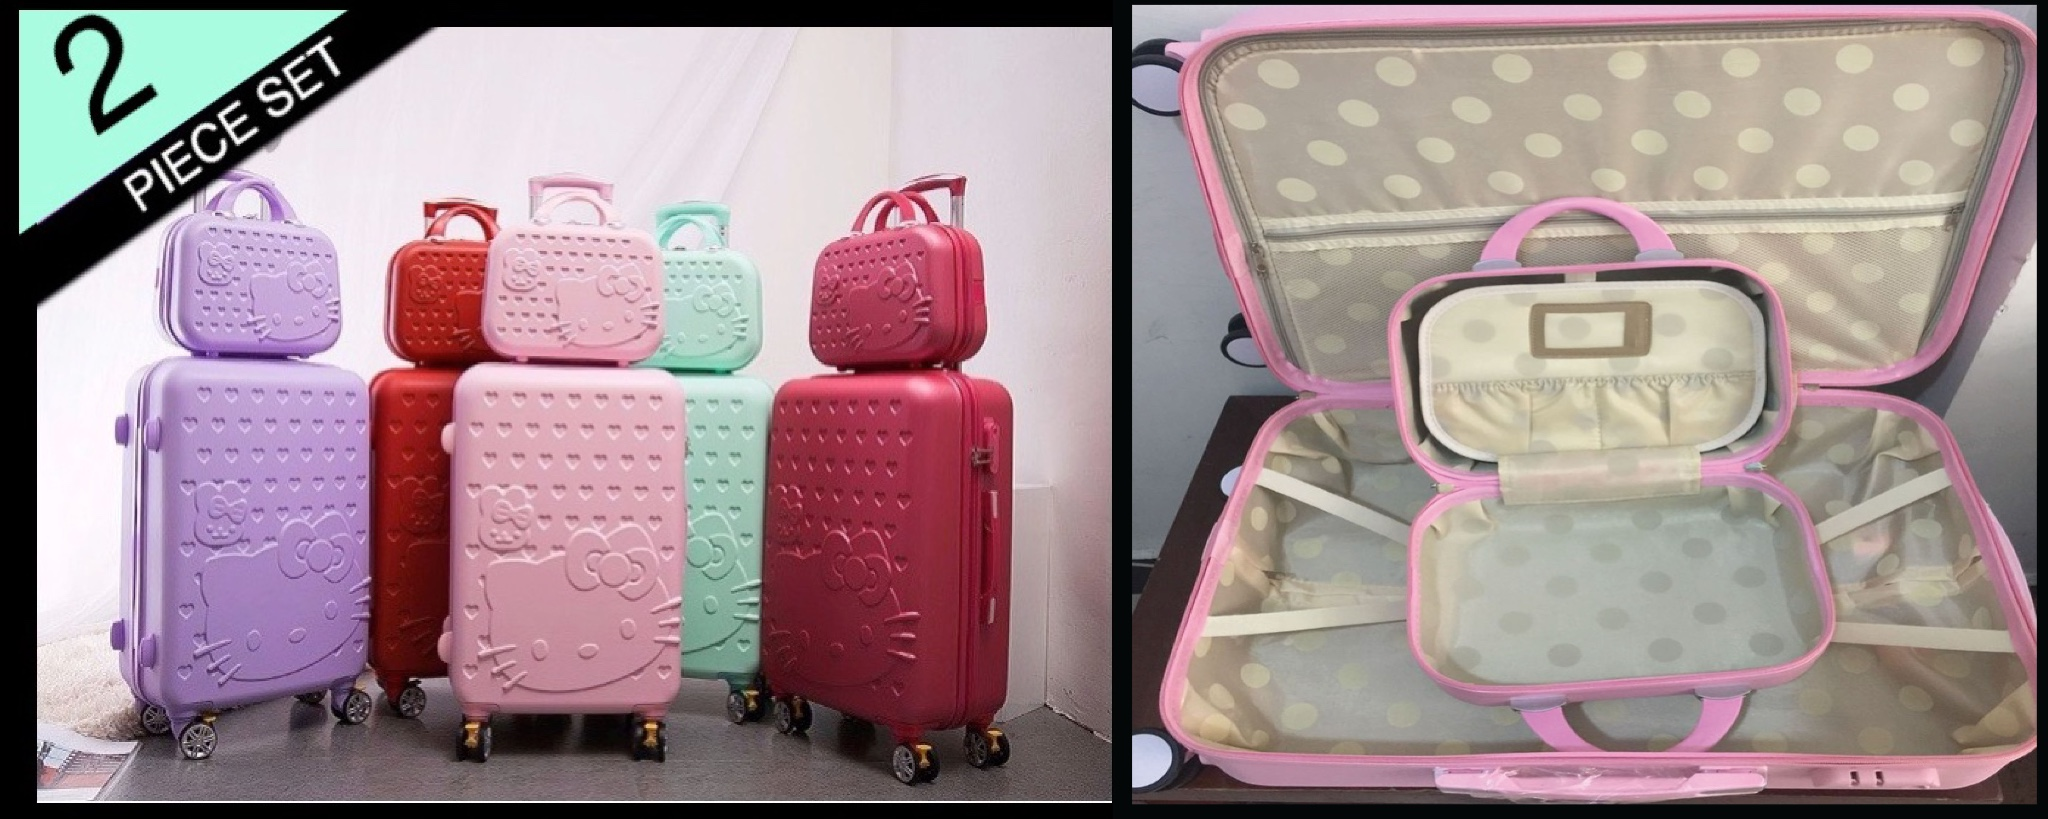 f03a1ca3c3 Details about Luggage Travel Suitcase Hello Kitty Trolley Wheels 20